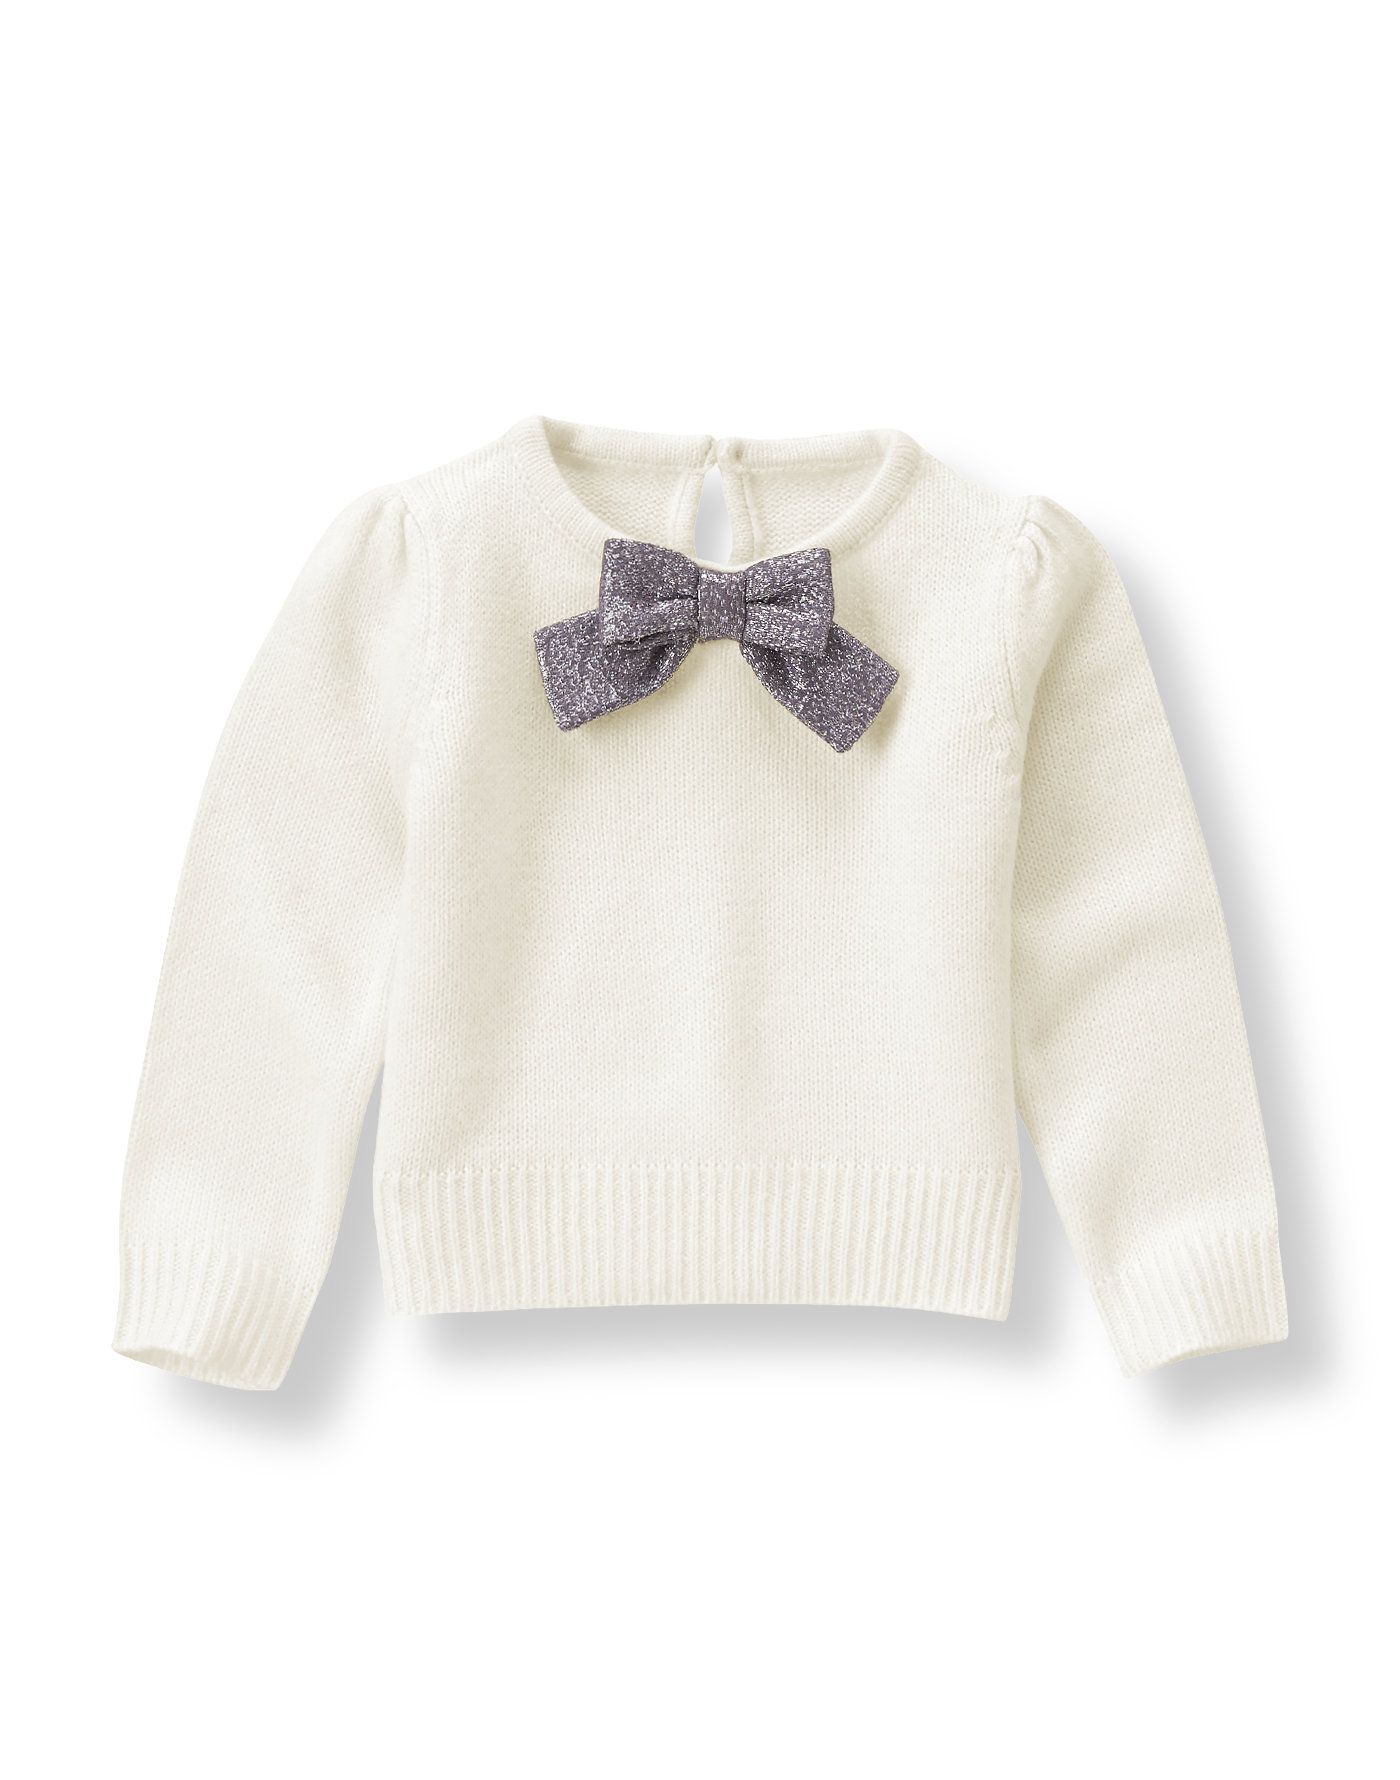 Our soft and cozy sweater twinkles with a metallic purple bow detail.